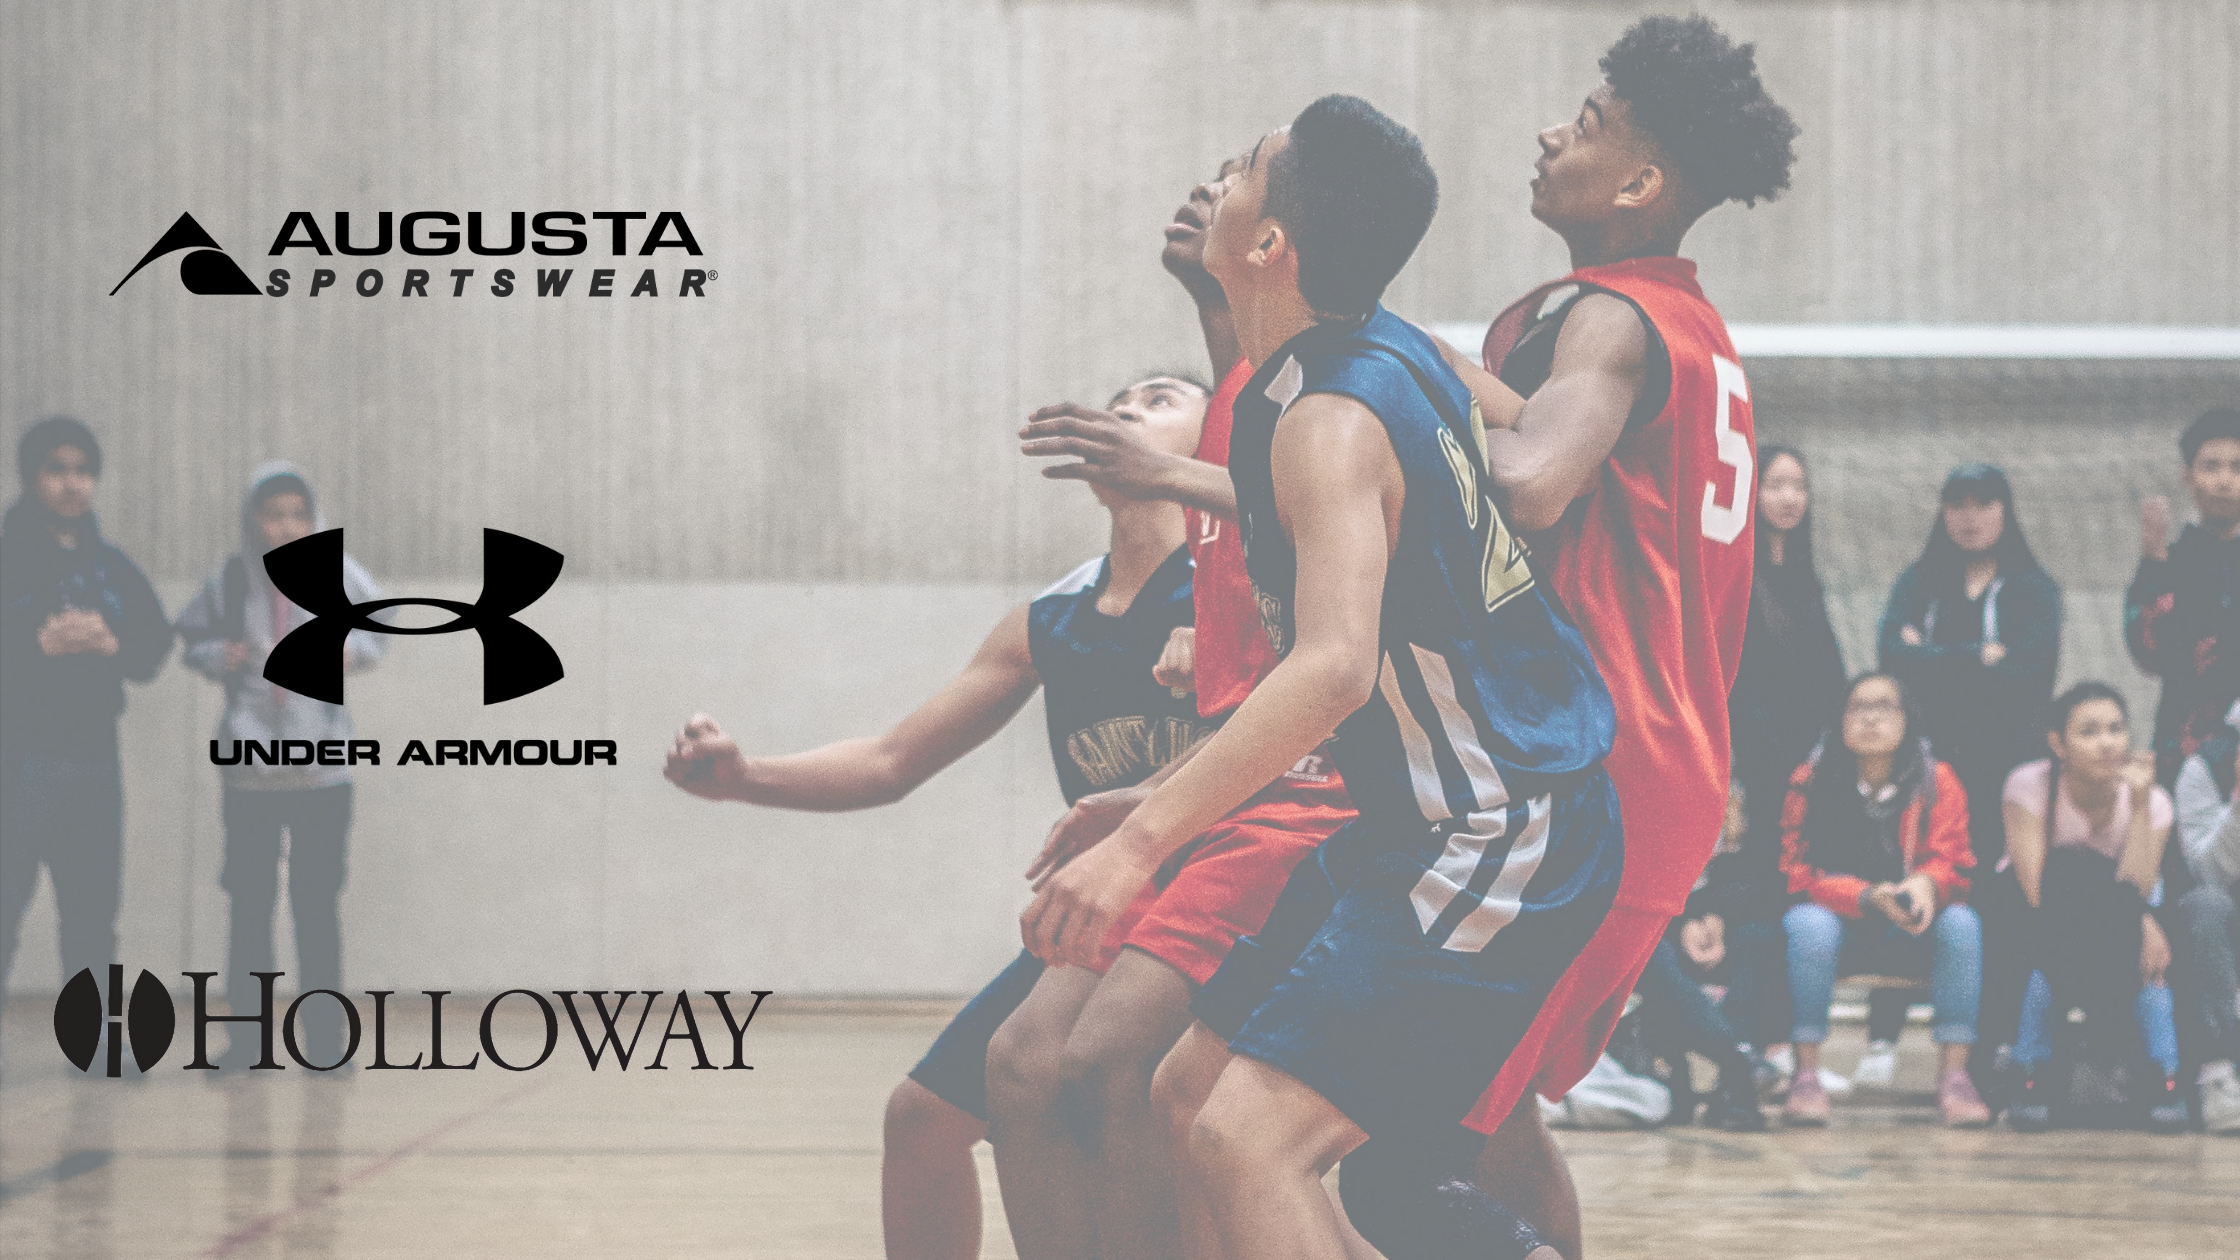 Brands for basketball - Augusta, Under Armour, Holloway